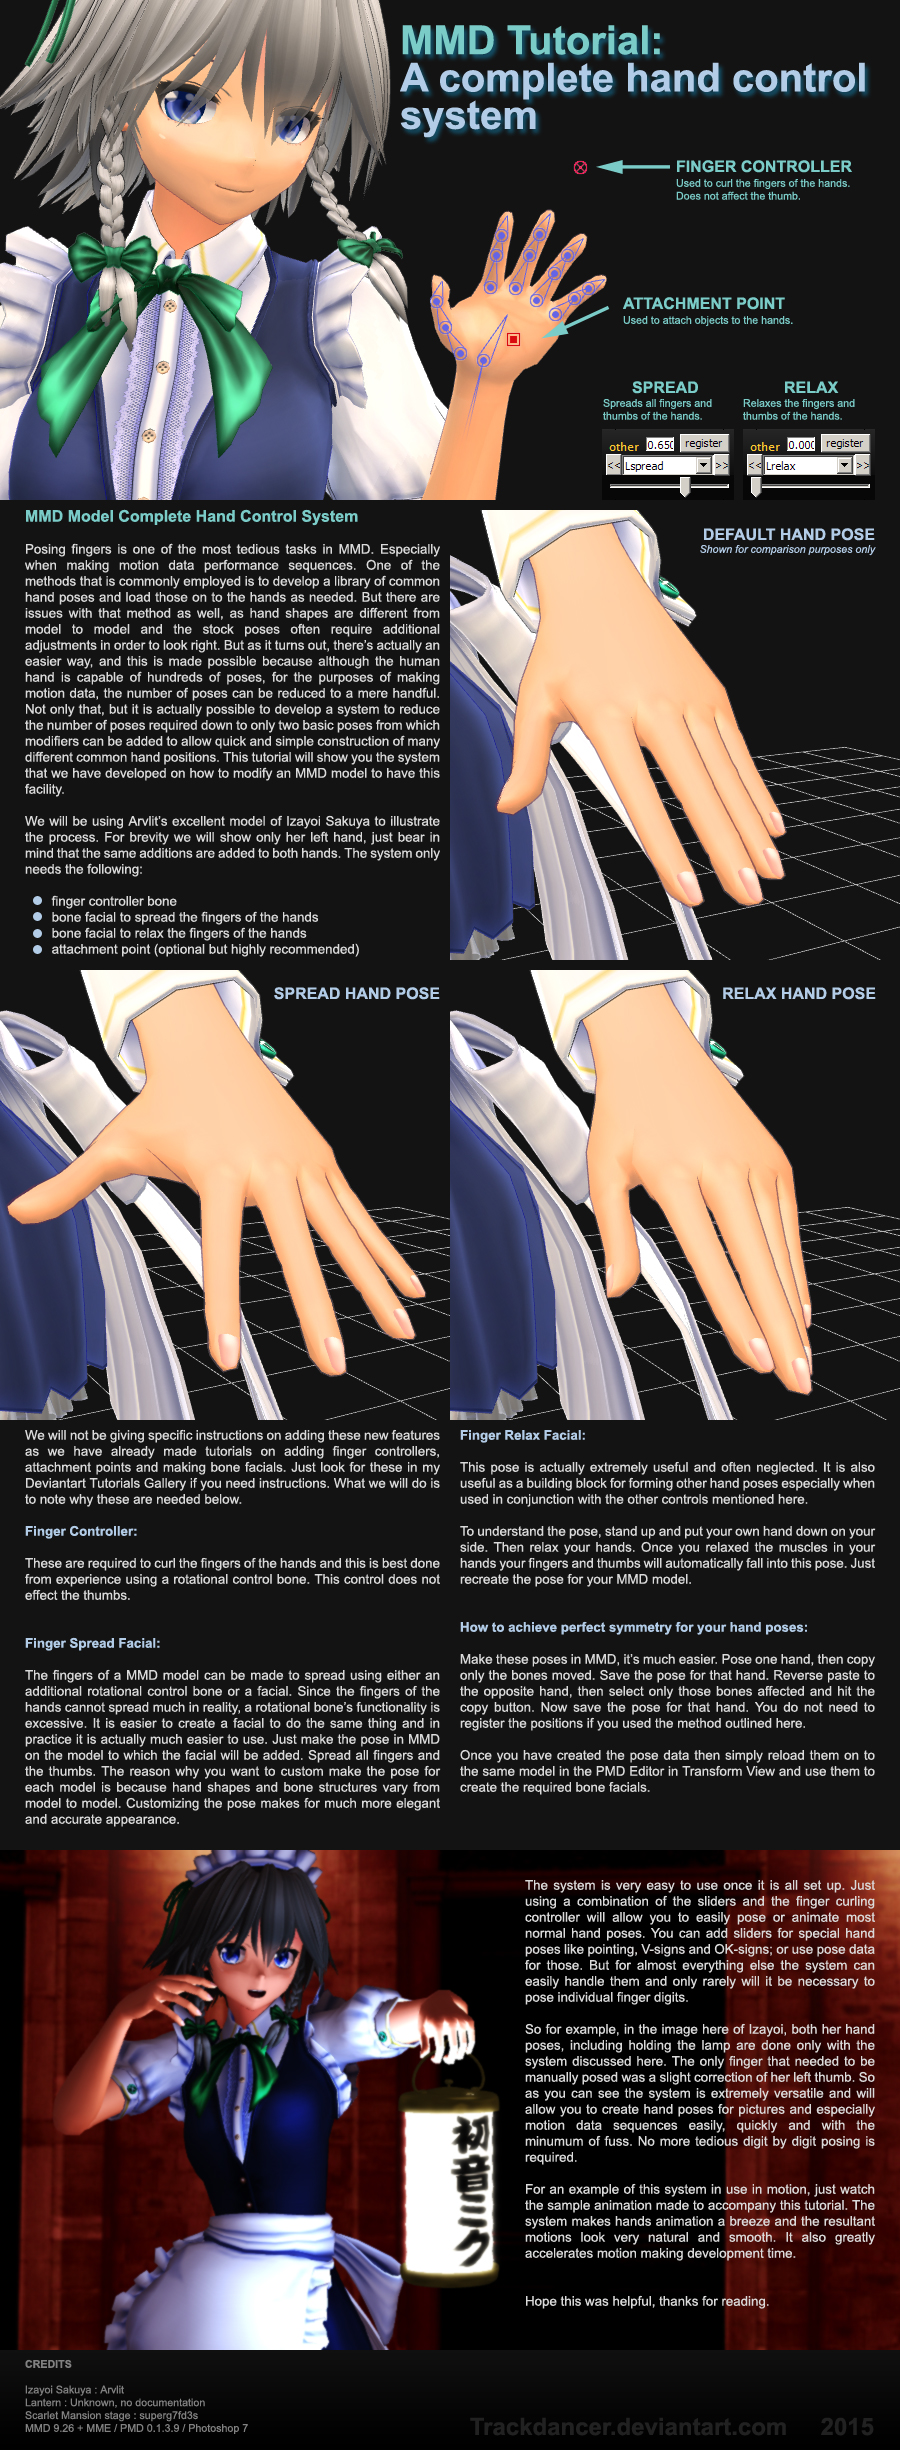 MMD Tutorial - A Complete Hand Control System